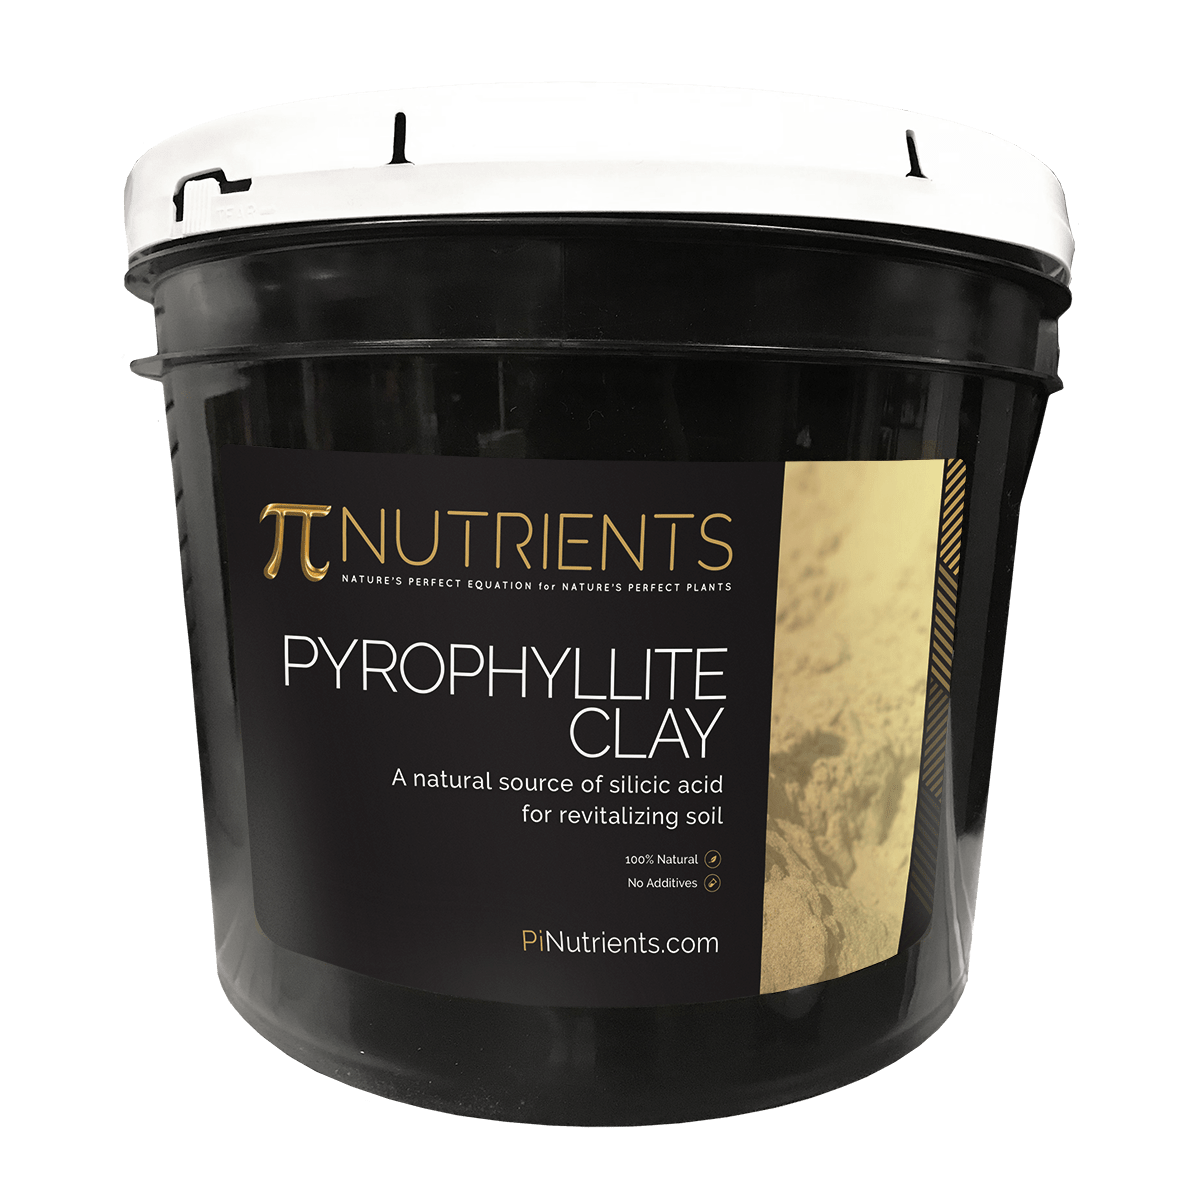 Pi Nutrients - Pyro Phyllite Clay - Fearless Gardener Brand Online